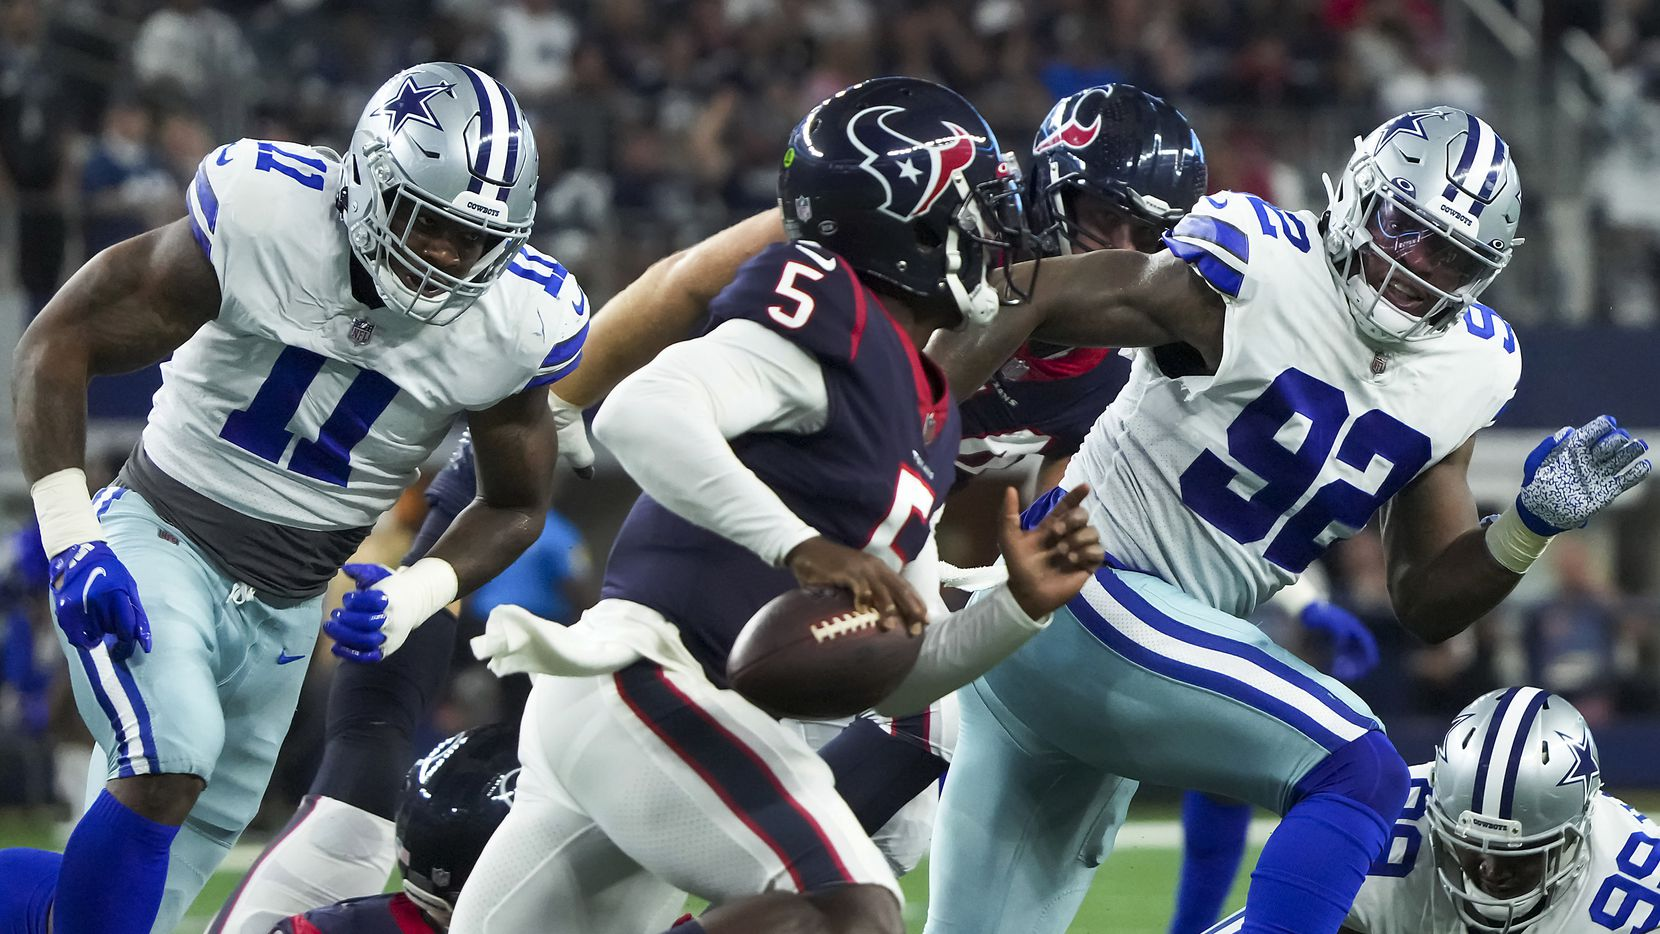 Houston Texans quarterback Tyrod Taylor (5) is flushed from the pocket by Dallas Cowboys linebacker Micah Parsons (11) and defensive end Dorance Armstrong (92) during the first half of a preseason NFL football game at AT&T Stadium on Saturday, Aug. 21, 2021, in Arlington.